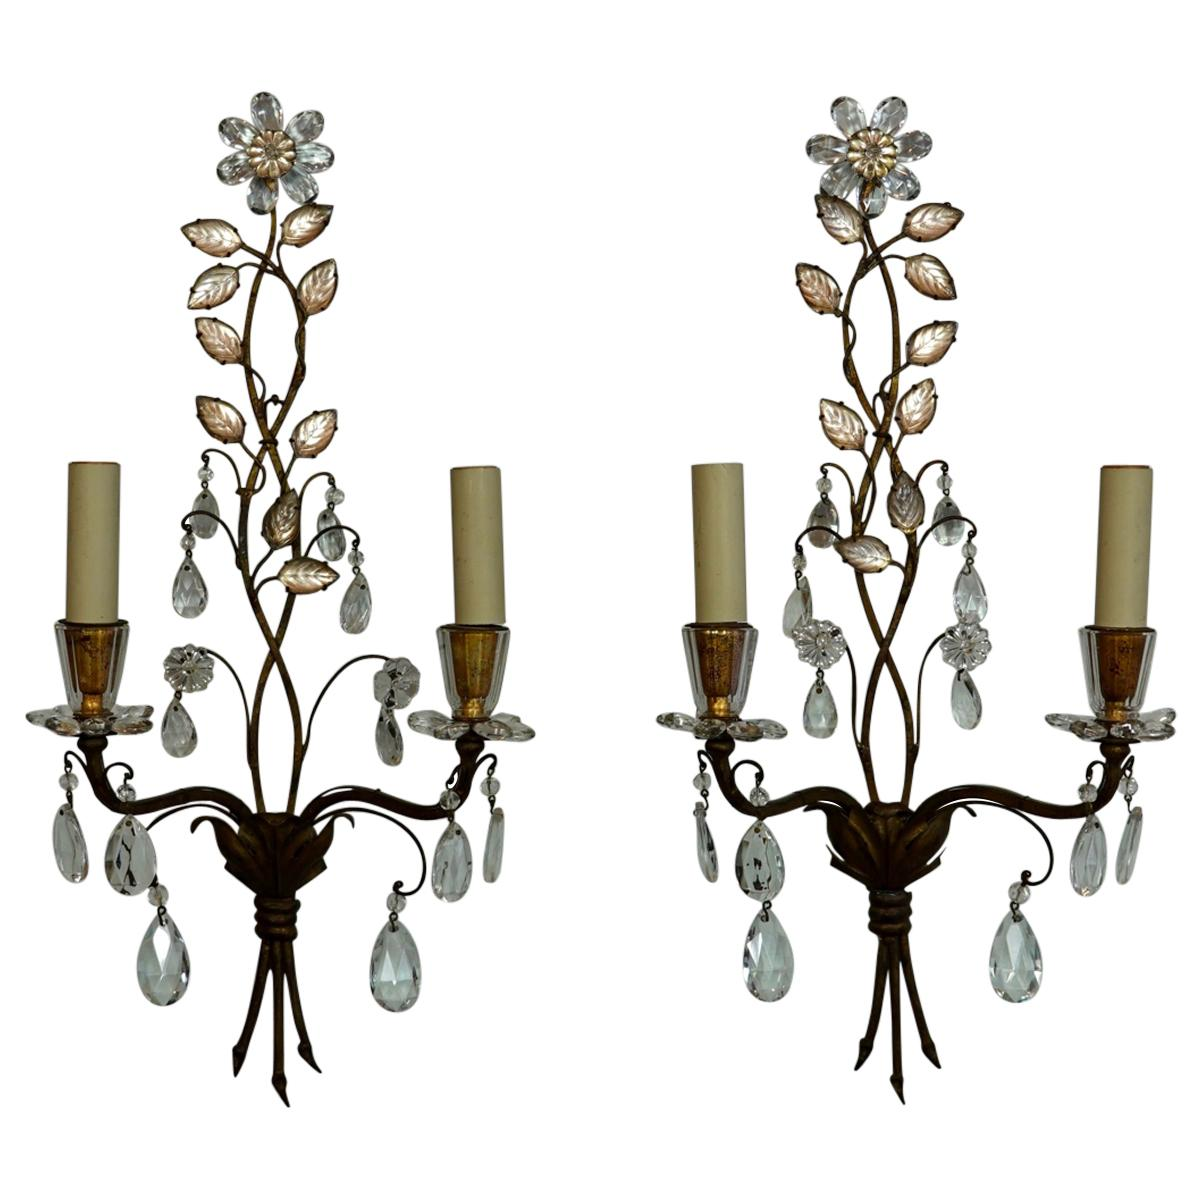 Pair of French Gilt-Metal and Crystal Leaf Sconces by Maison Baguès